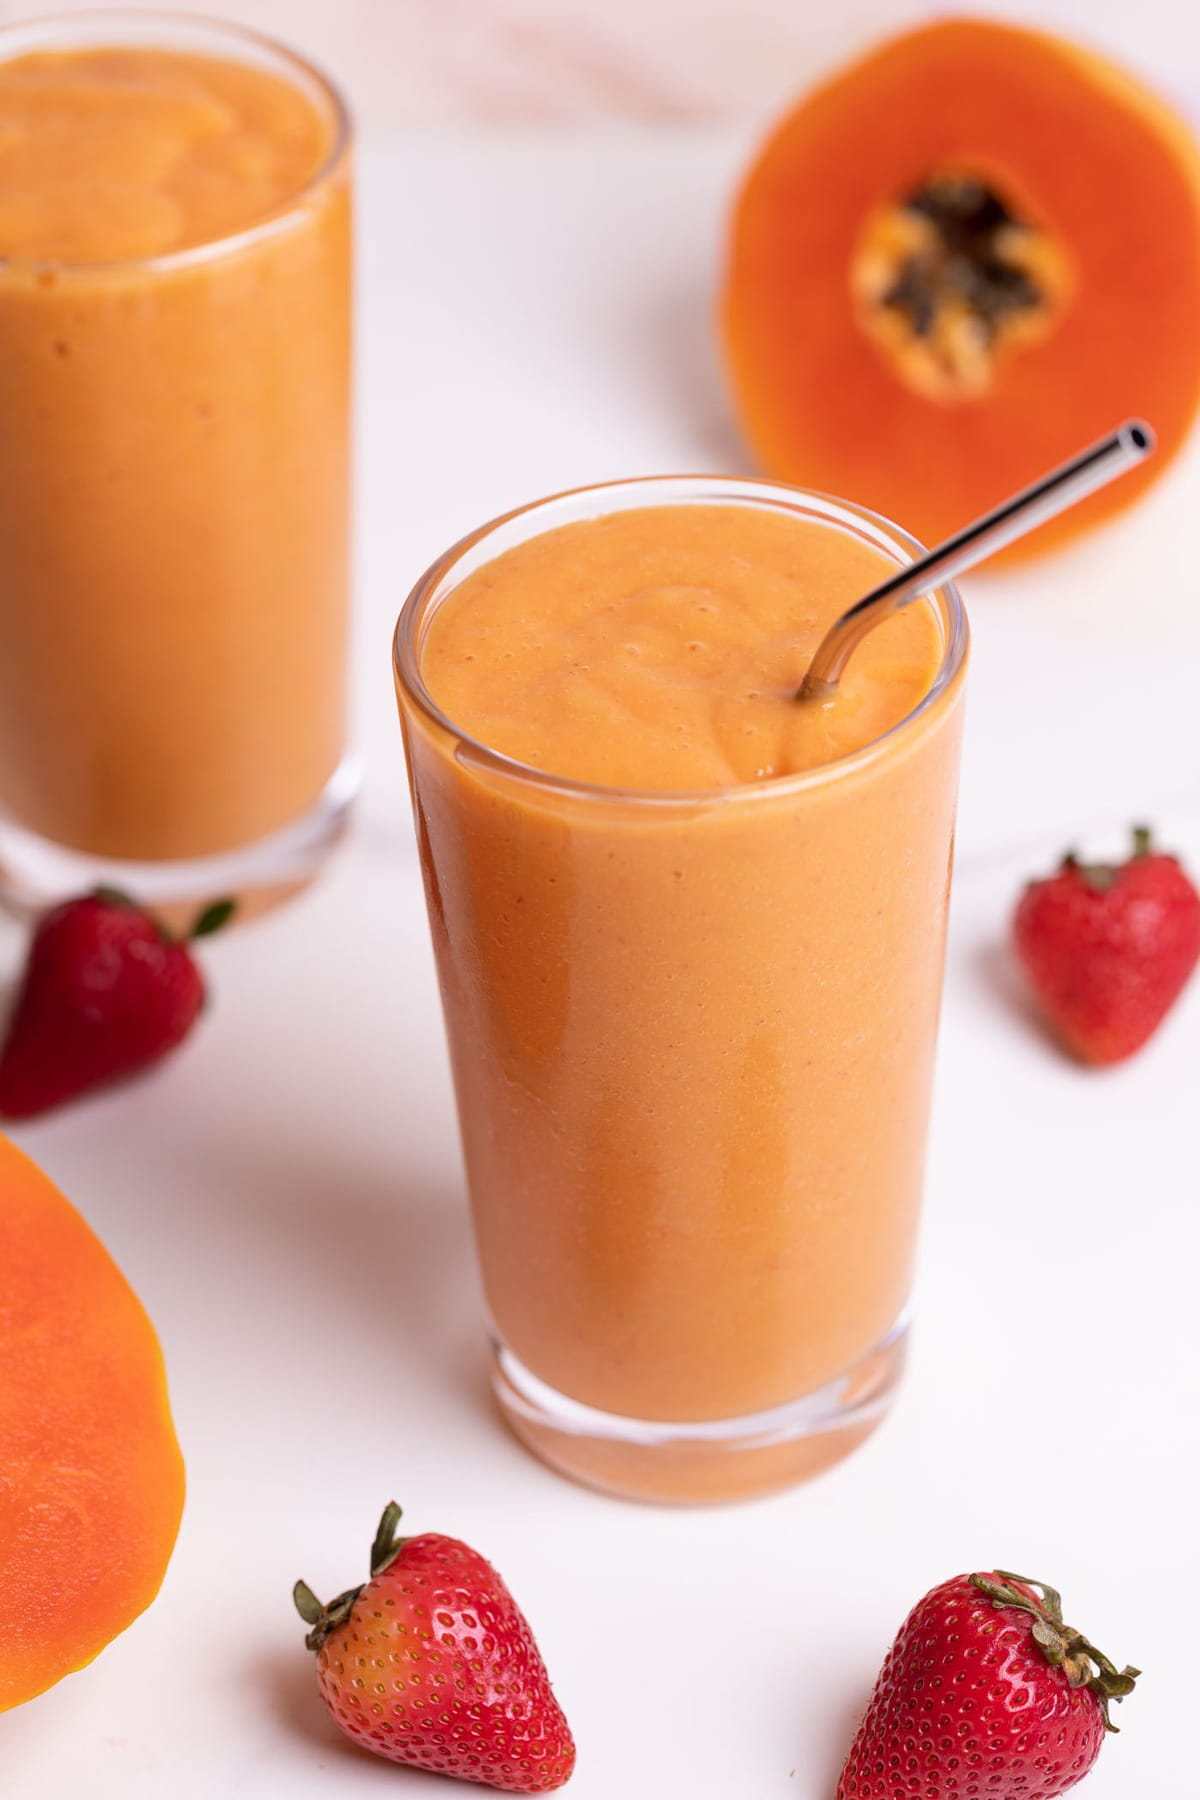 two glasses of papaya smoothies with fresh strawberries on the side